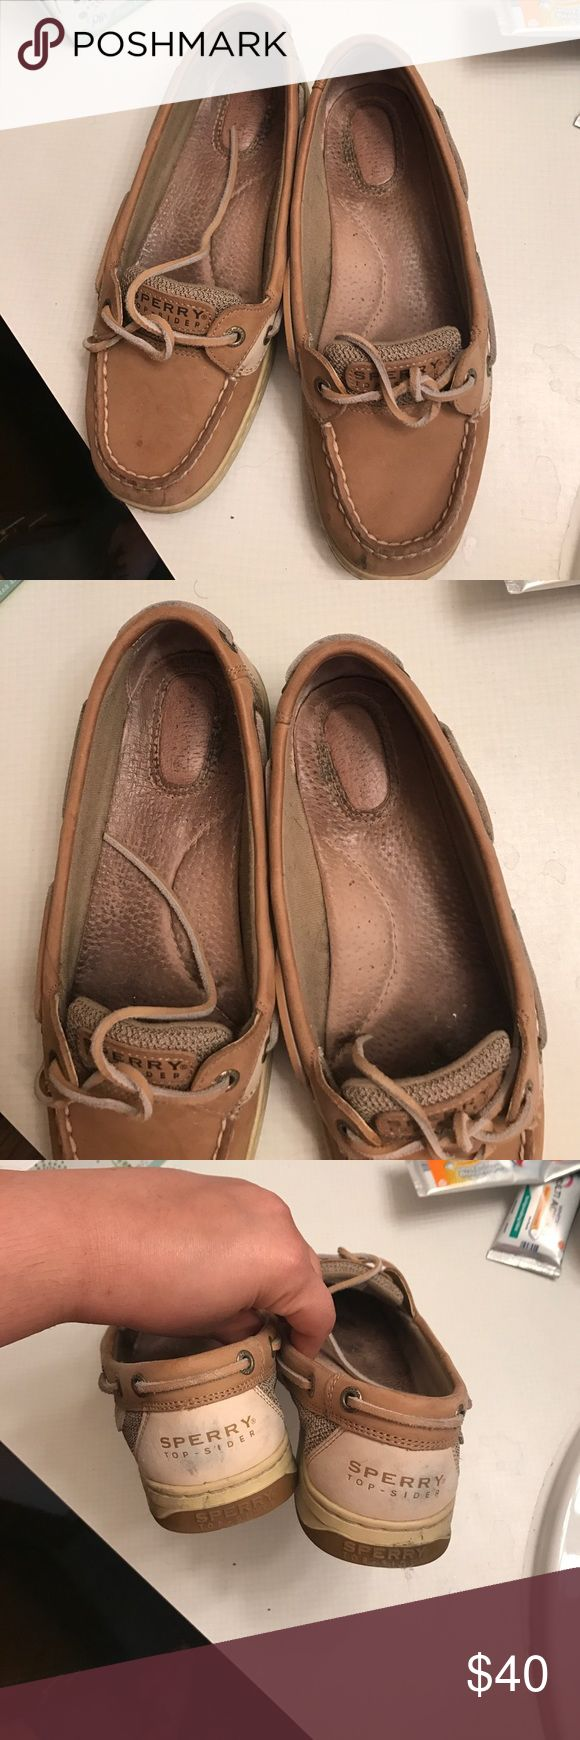 Sperry Women's  Top-Sider Size 8.5 Worn a handful of times has a few scuff marks and wear. Some of the condition will improve with some cleaning but not all Sperry Top-Sider Shoes